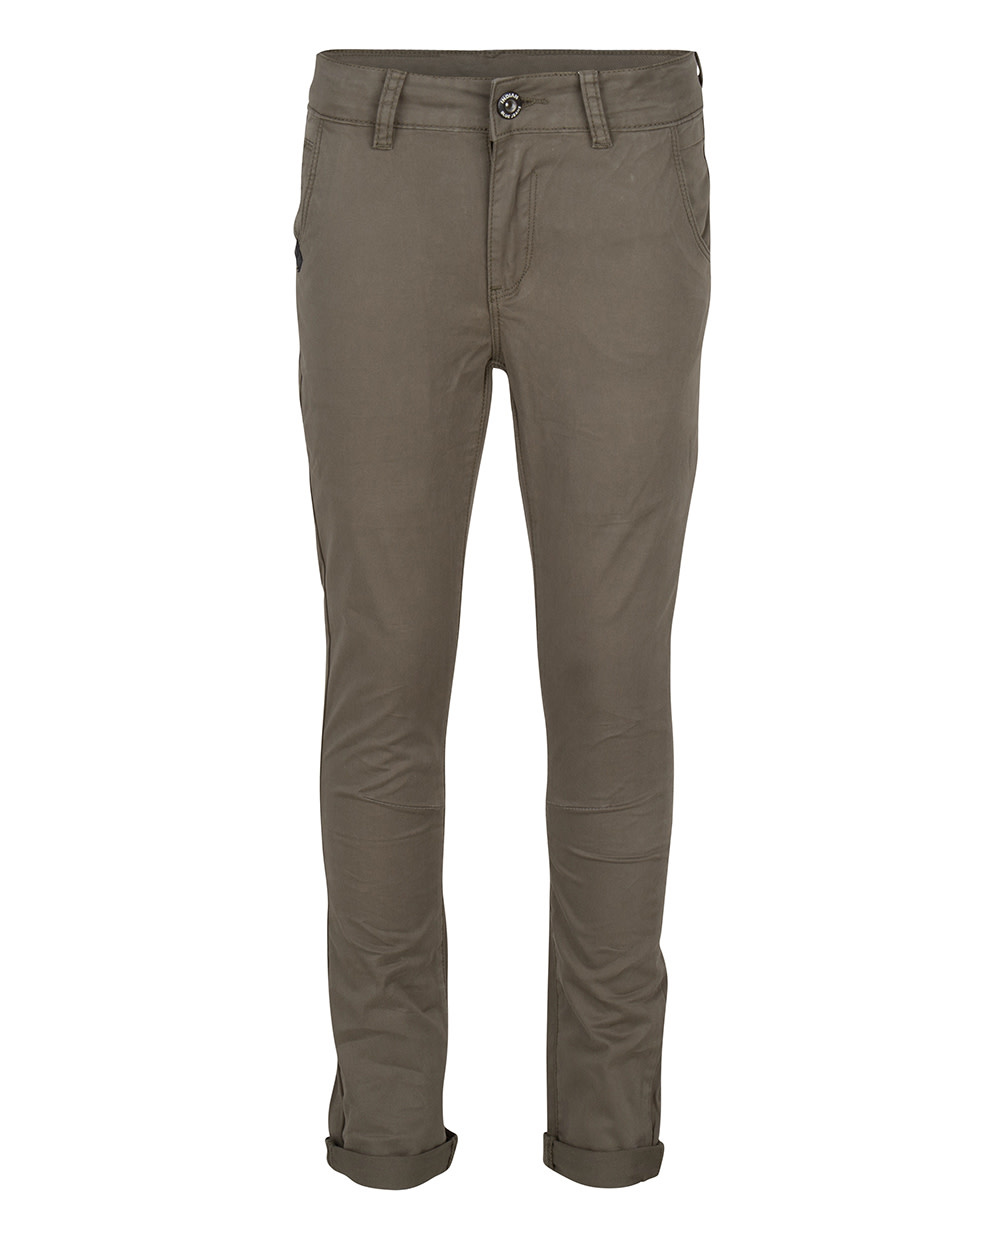 Indian Blue Jeans Chino Pant